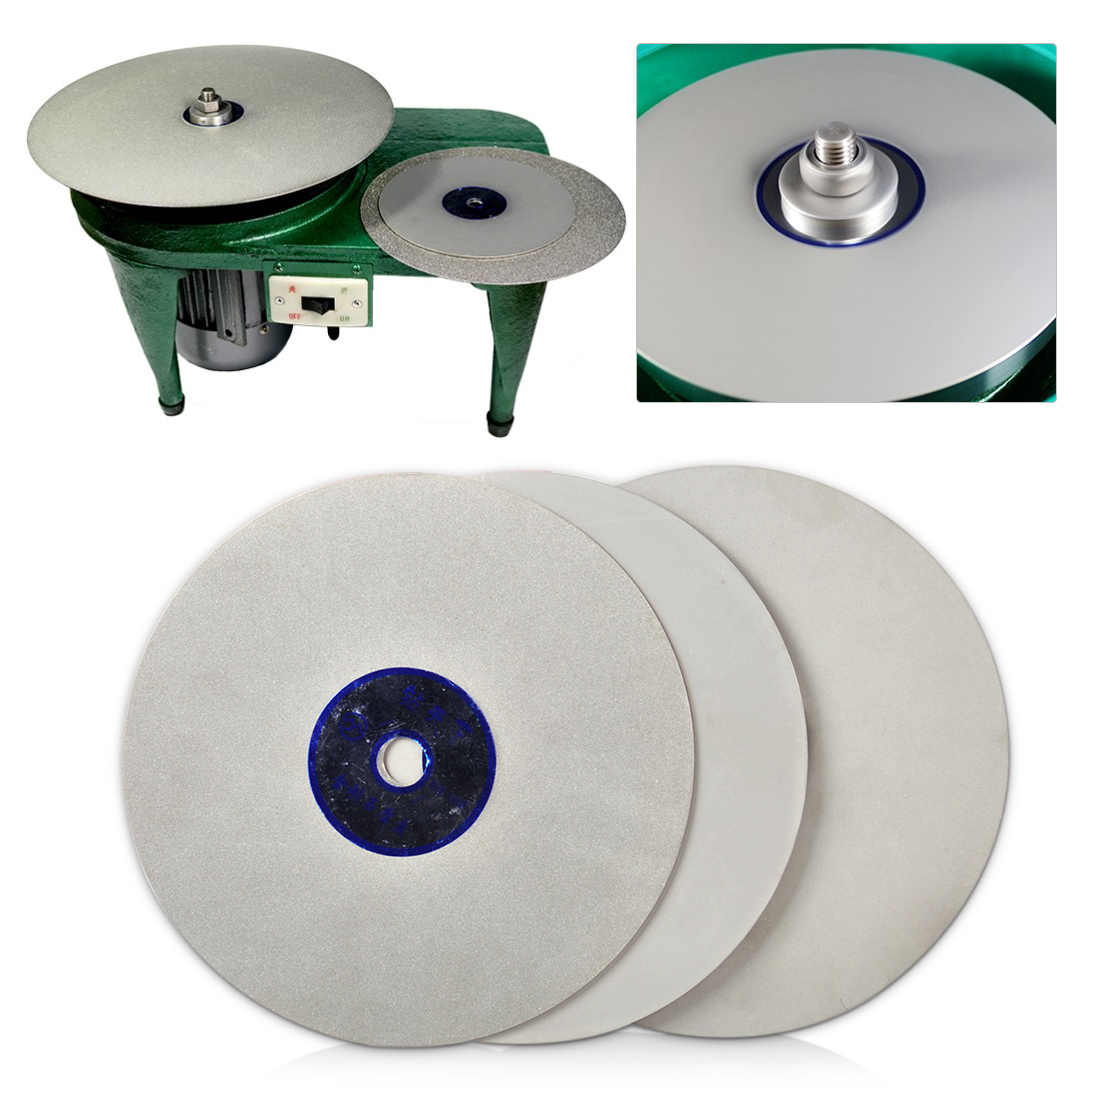 "LETAOSK High Quality 6"" Lapidary Grinding Polishing Wheel Disk Grit 500/1200/3000 Diamond Coated Flat Lap Tool"